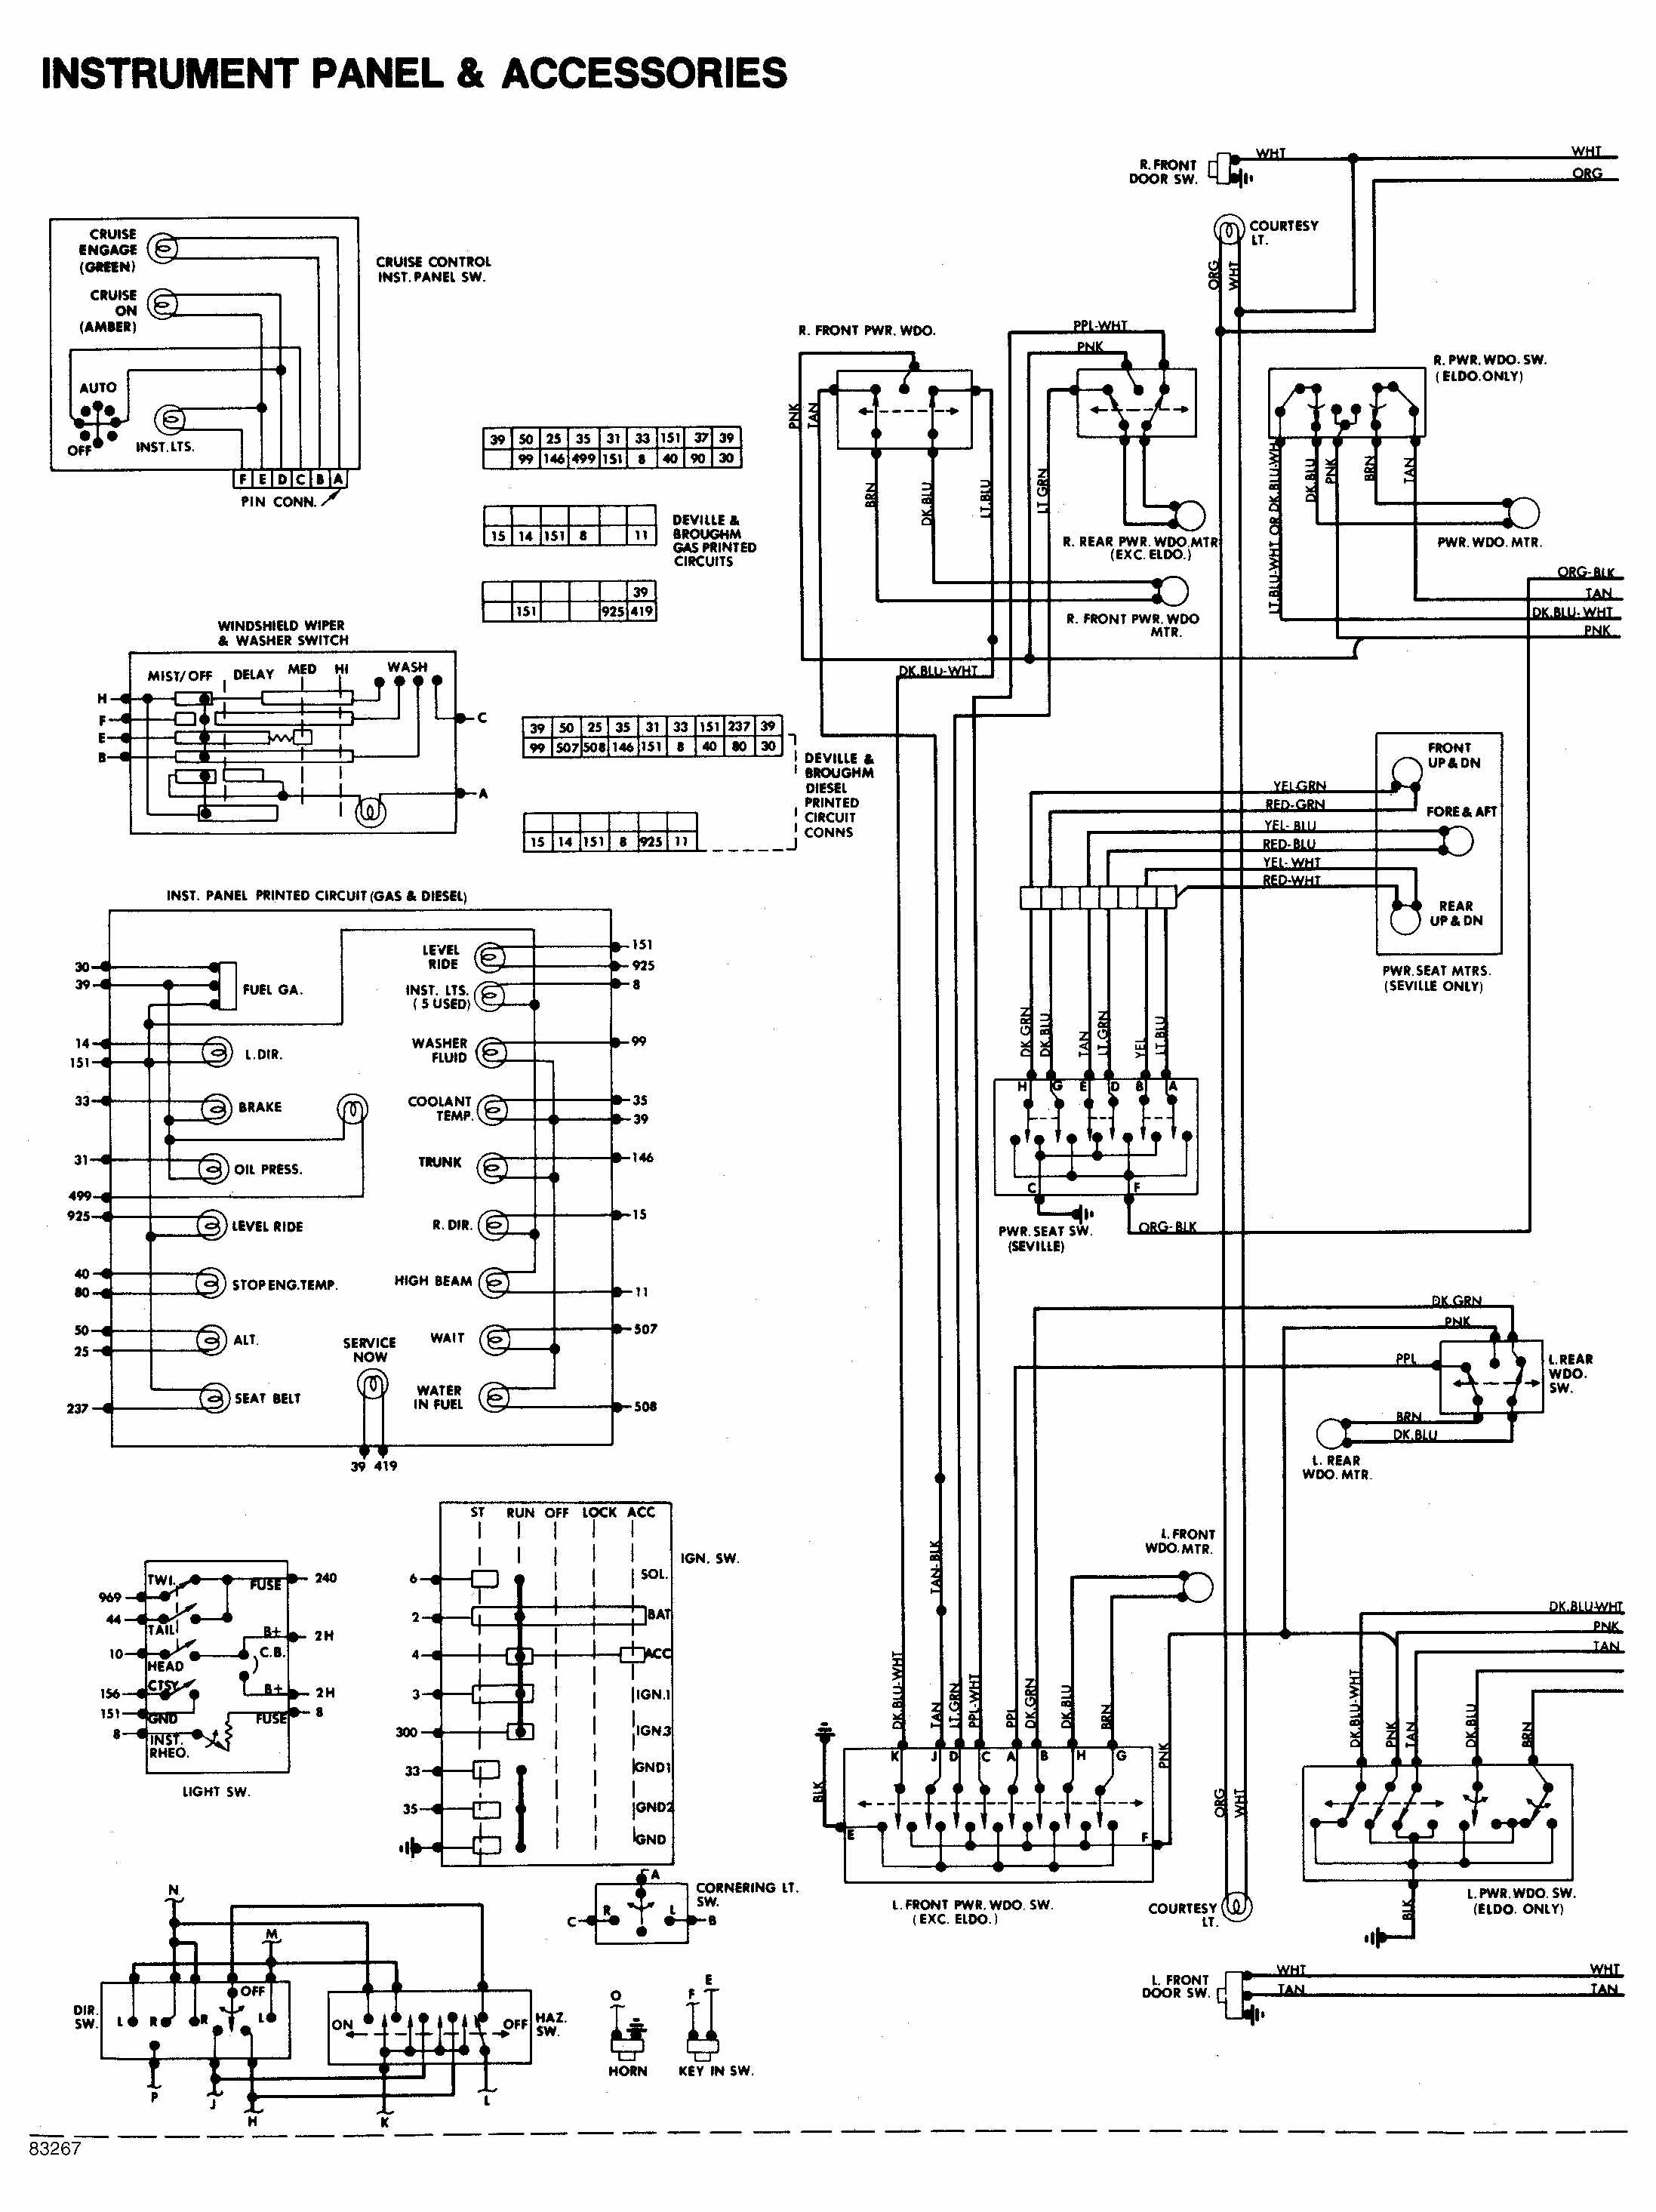 instrument panel and accessories wiring diagram of 1984 cadillac deville gm wiring diagrams gm wiring diagrams online \u2022 wiring diagrams j 1984 chevy truck fuse box diagram at beritabola.co